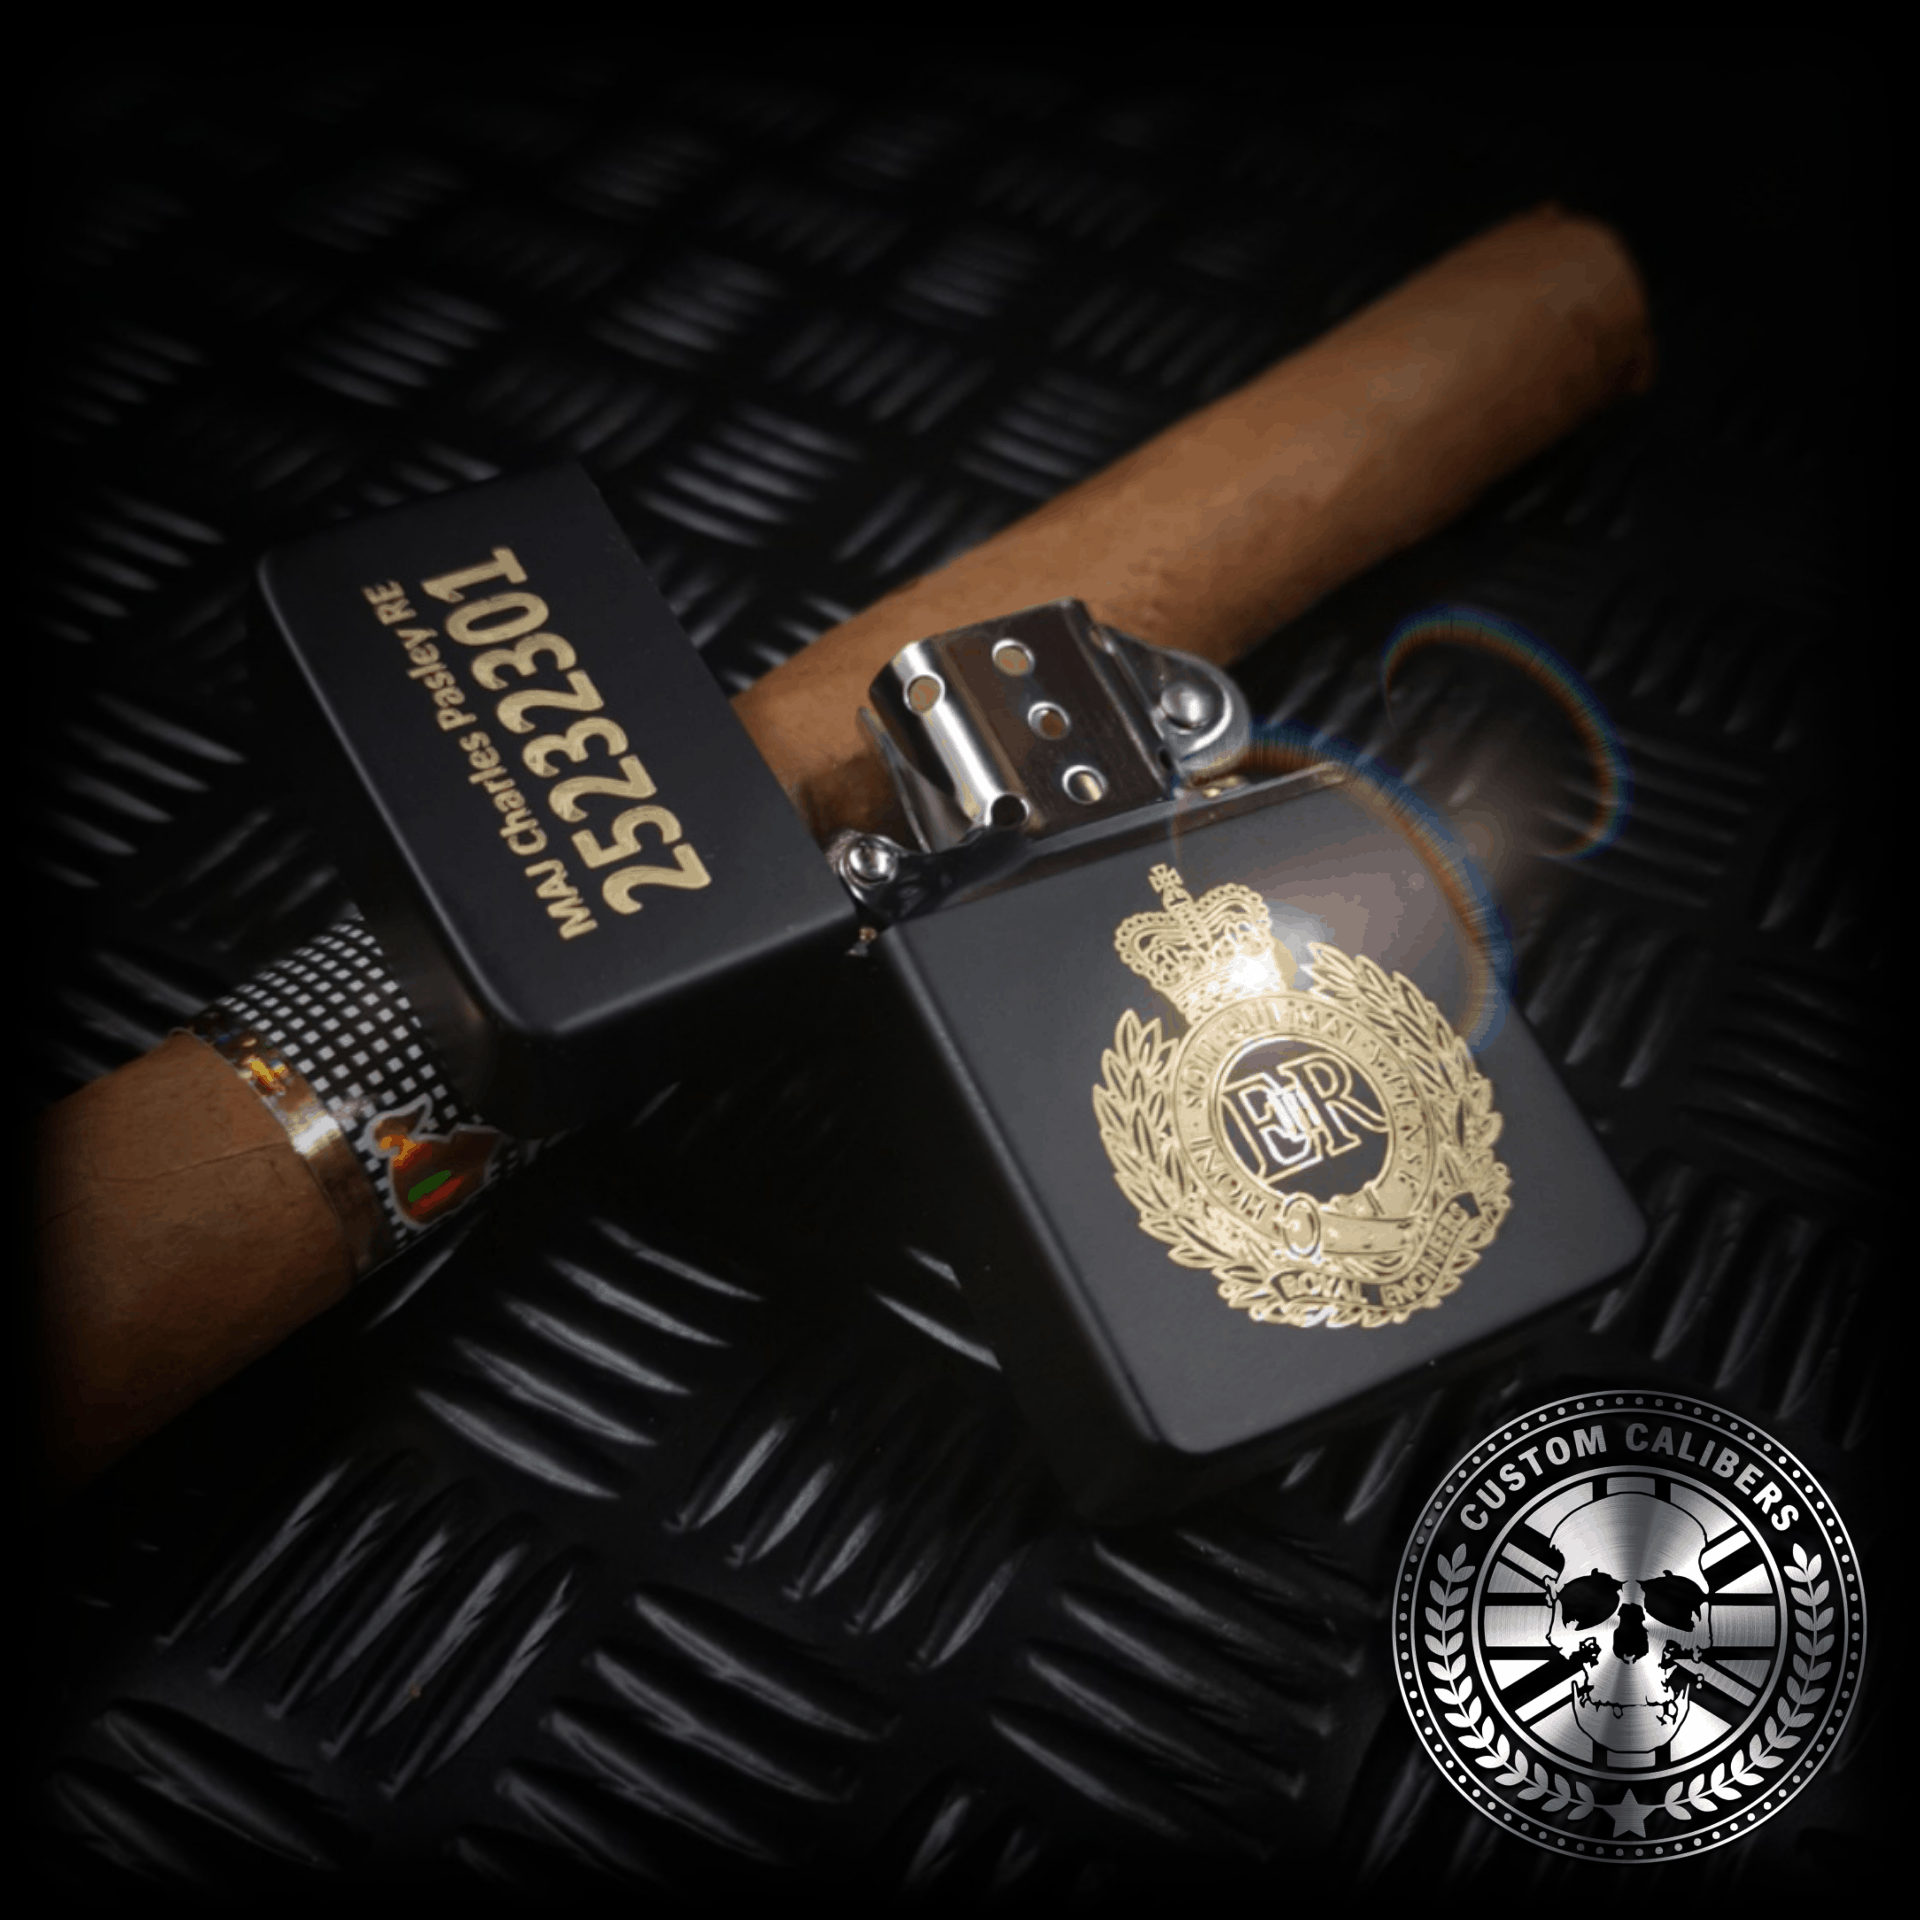 A matt black lighter with the lid open engraved with the royal engineers crest resting on a cuban cigar